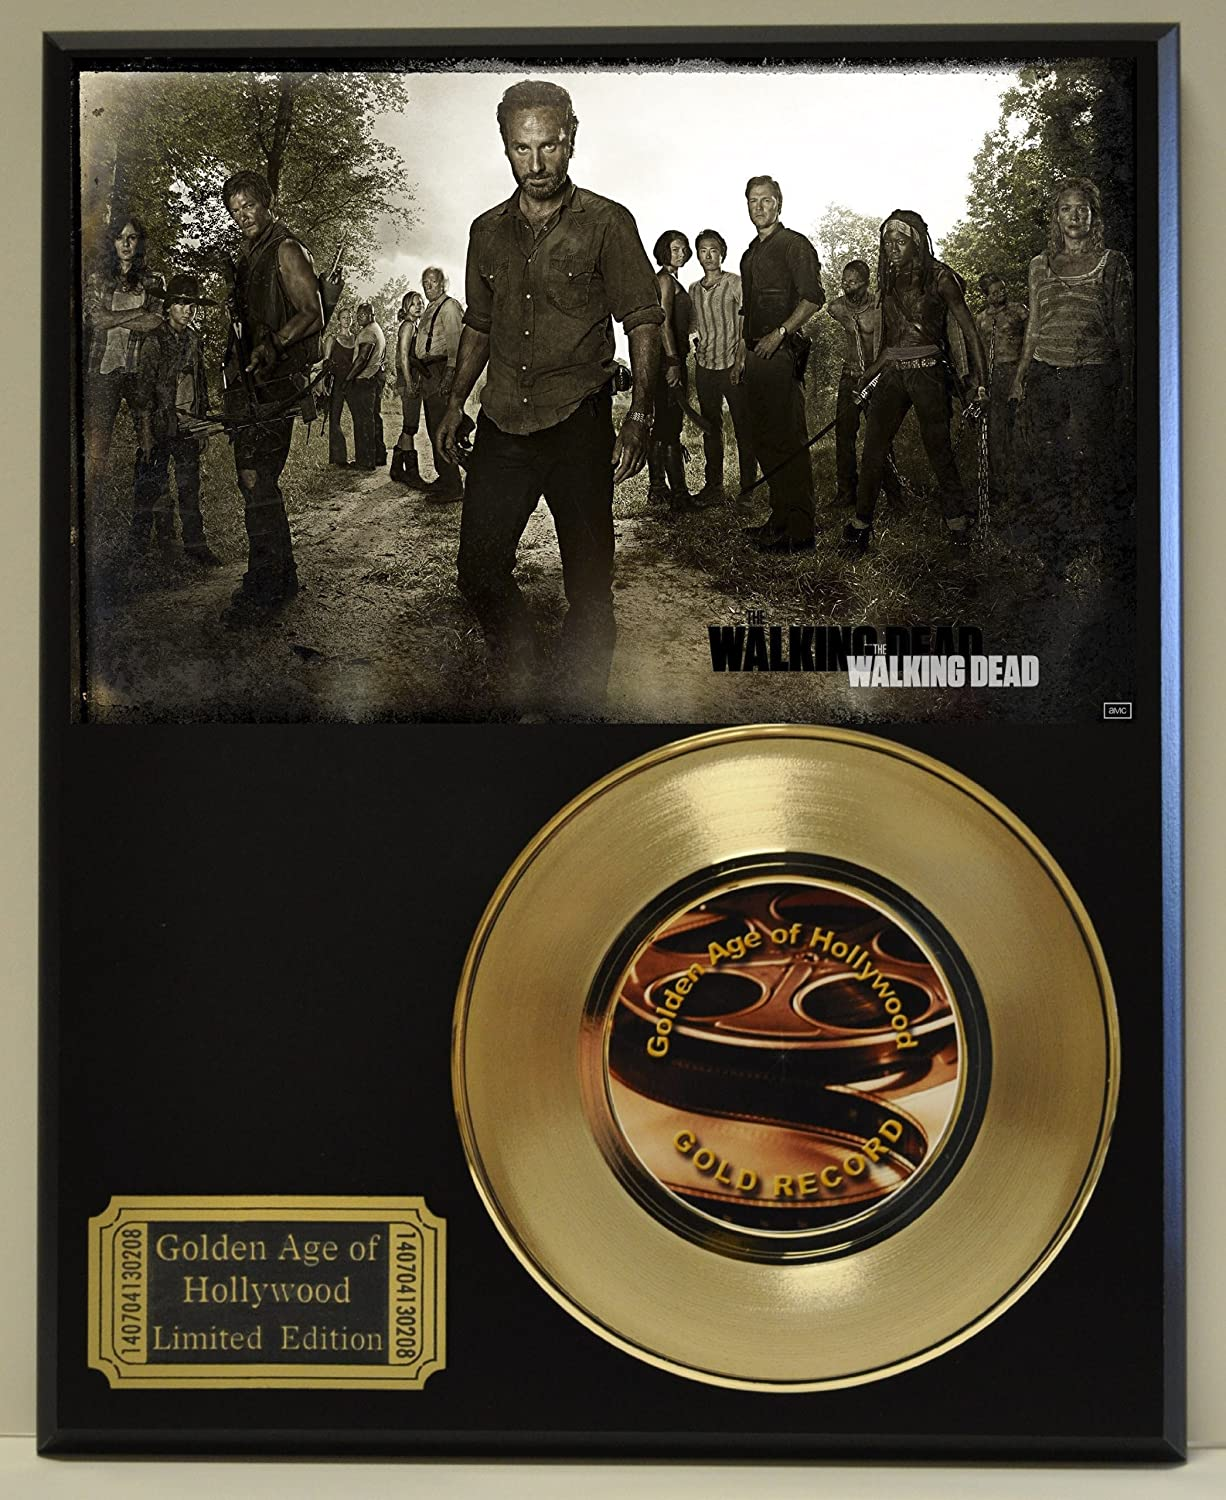 Walking Dead Limited Edition Display. Only 500 made. Limited quanities. FREE US SHIPPING 91aKBgY1r2LSL1500_